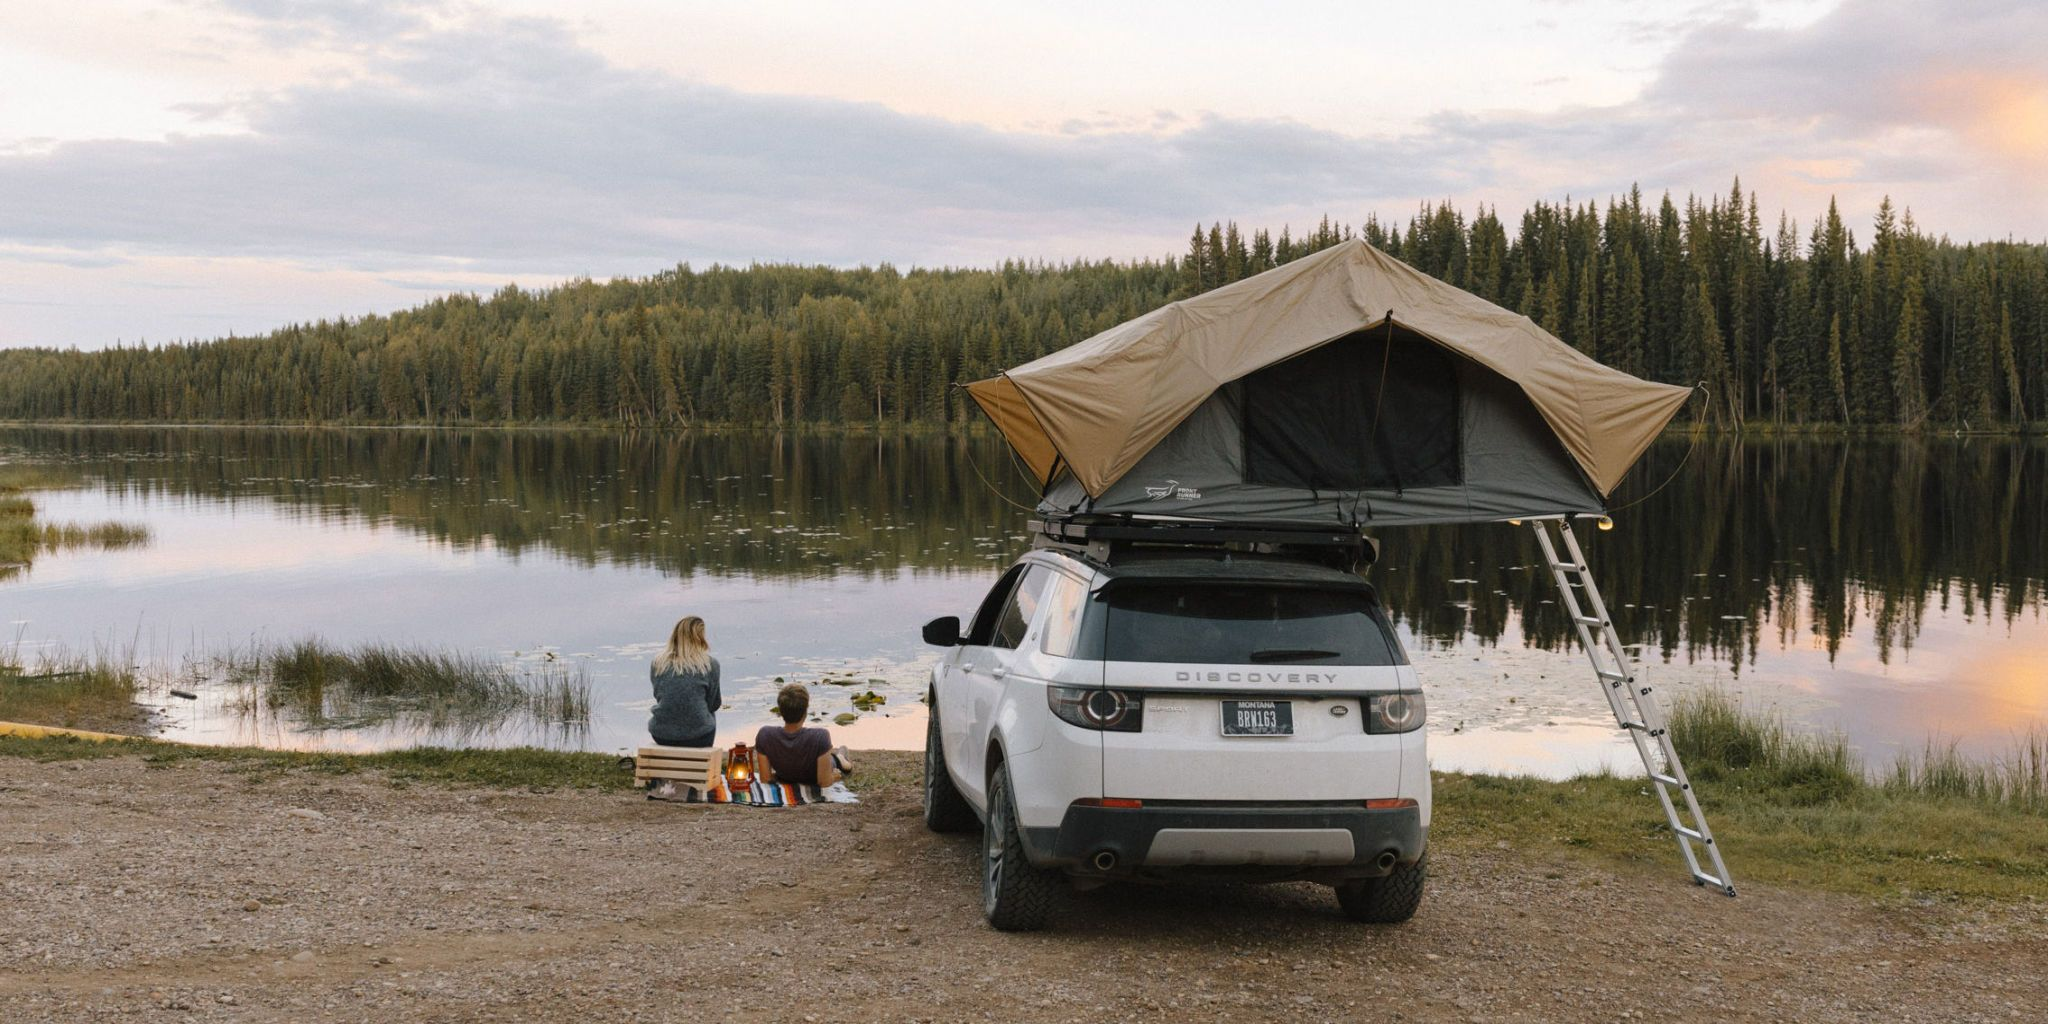 8 Stunning Roof Top Tents That Make C&ing a Breeze | Best Roof Top Tents | Roof Top C&ing Tents & 8 Stunning Roof Top Tents That Make Camping a Breeze | Best Roof ... memphite.com